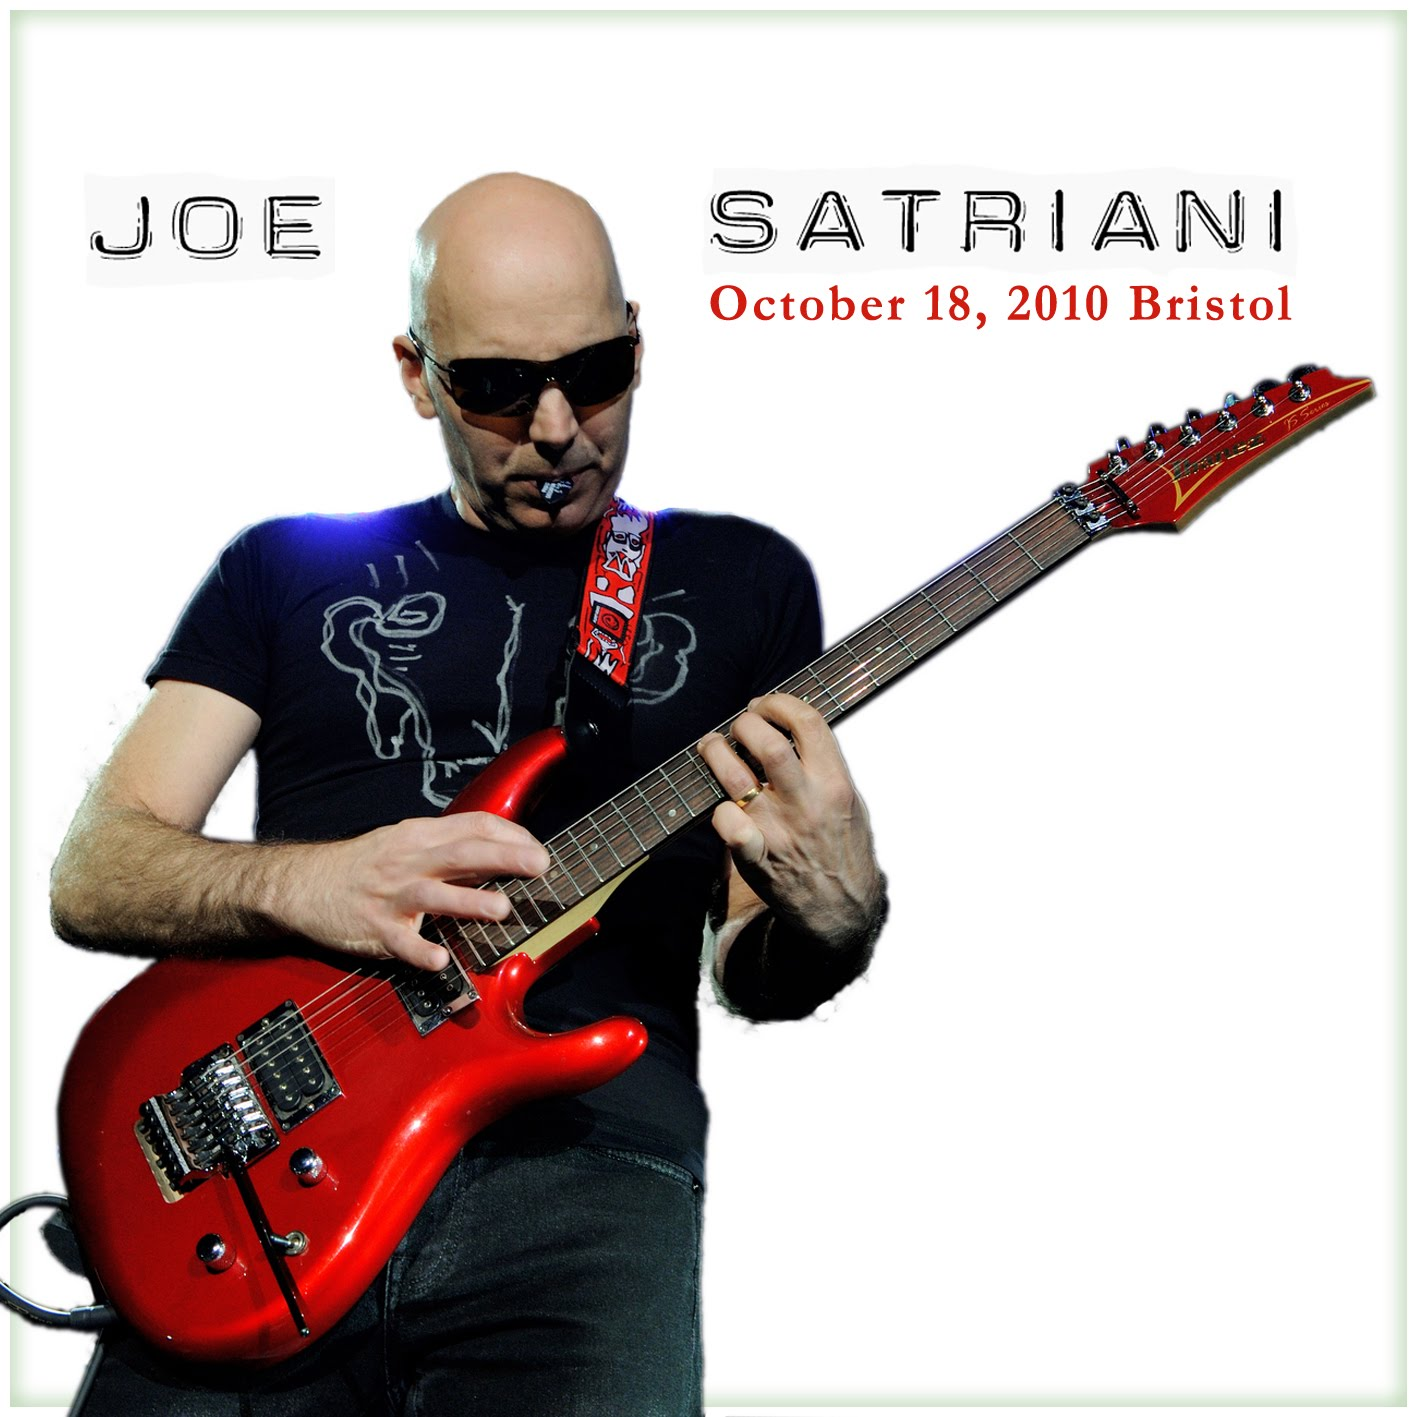 Joe Satriani - Gallery